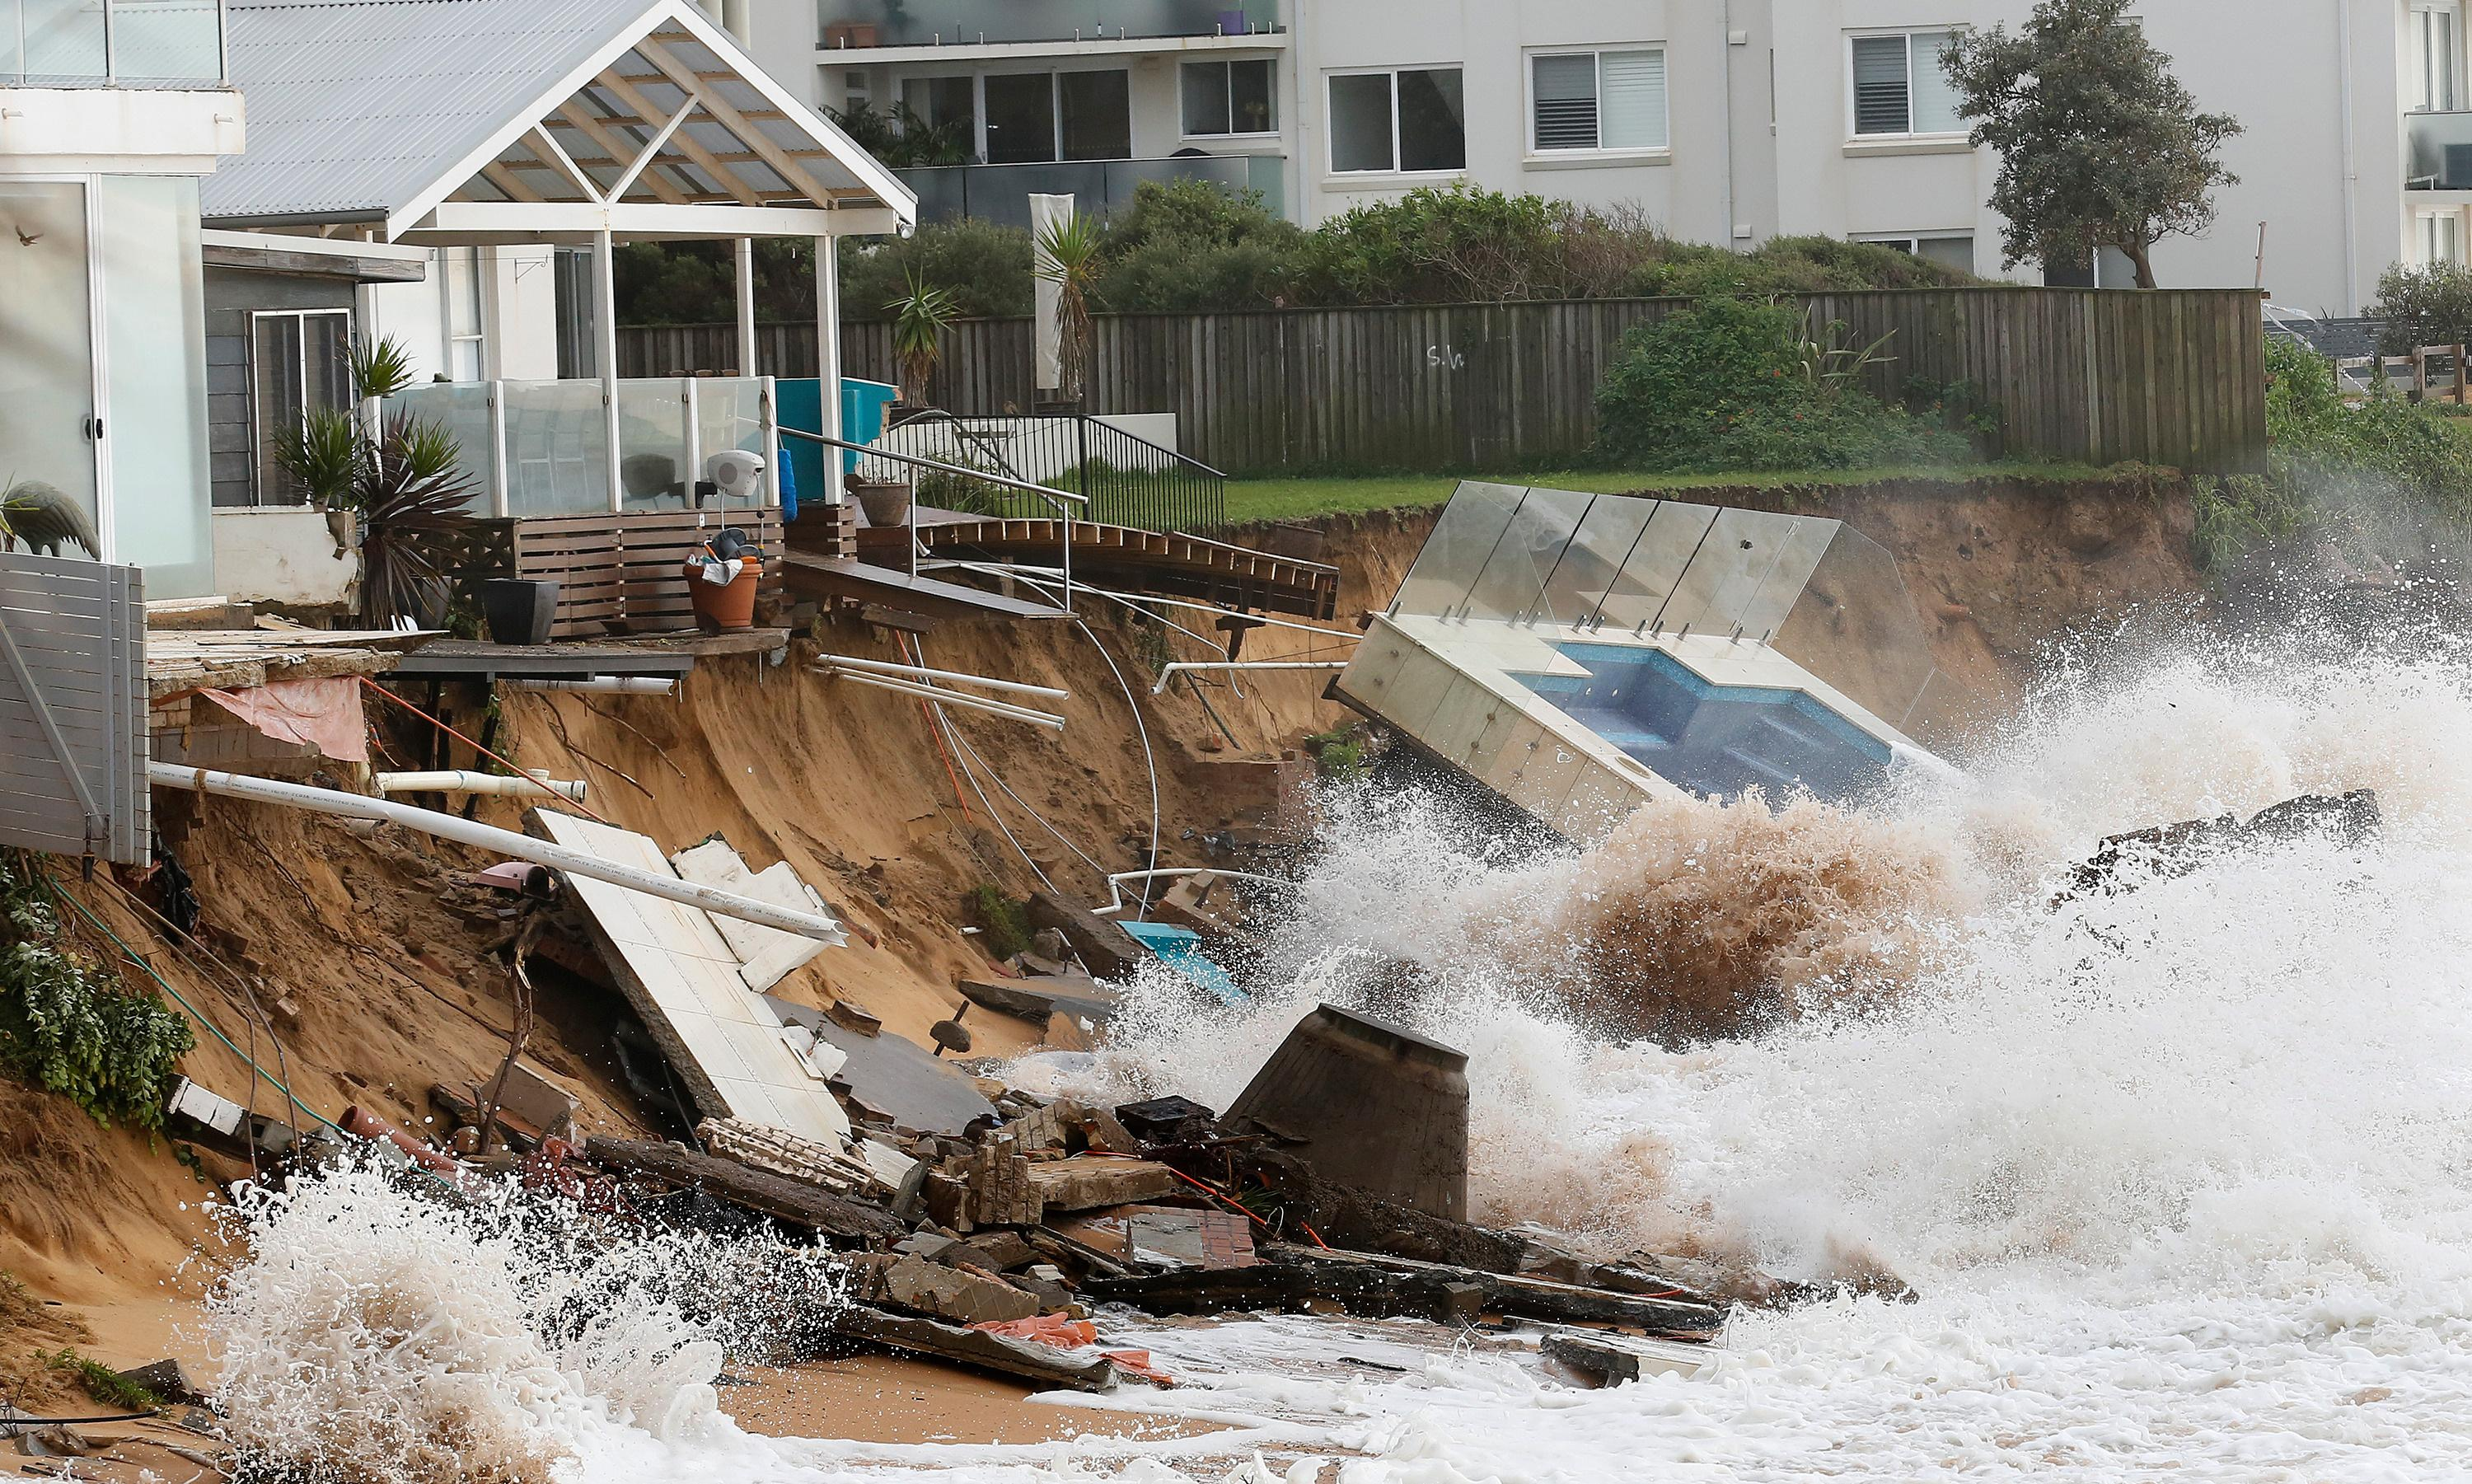 Holding back the tides: Sydney's battle against coastal erosion